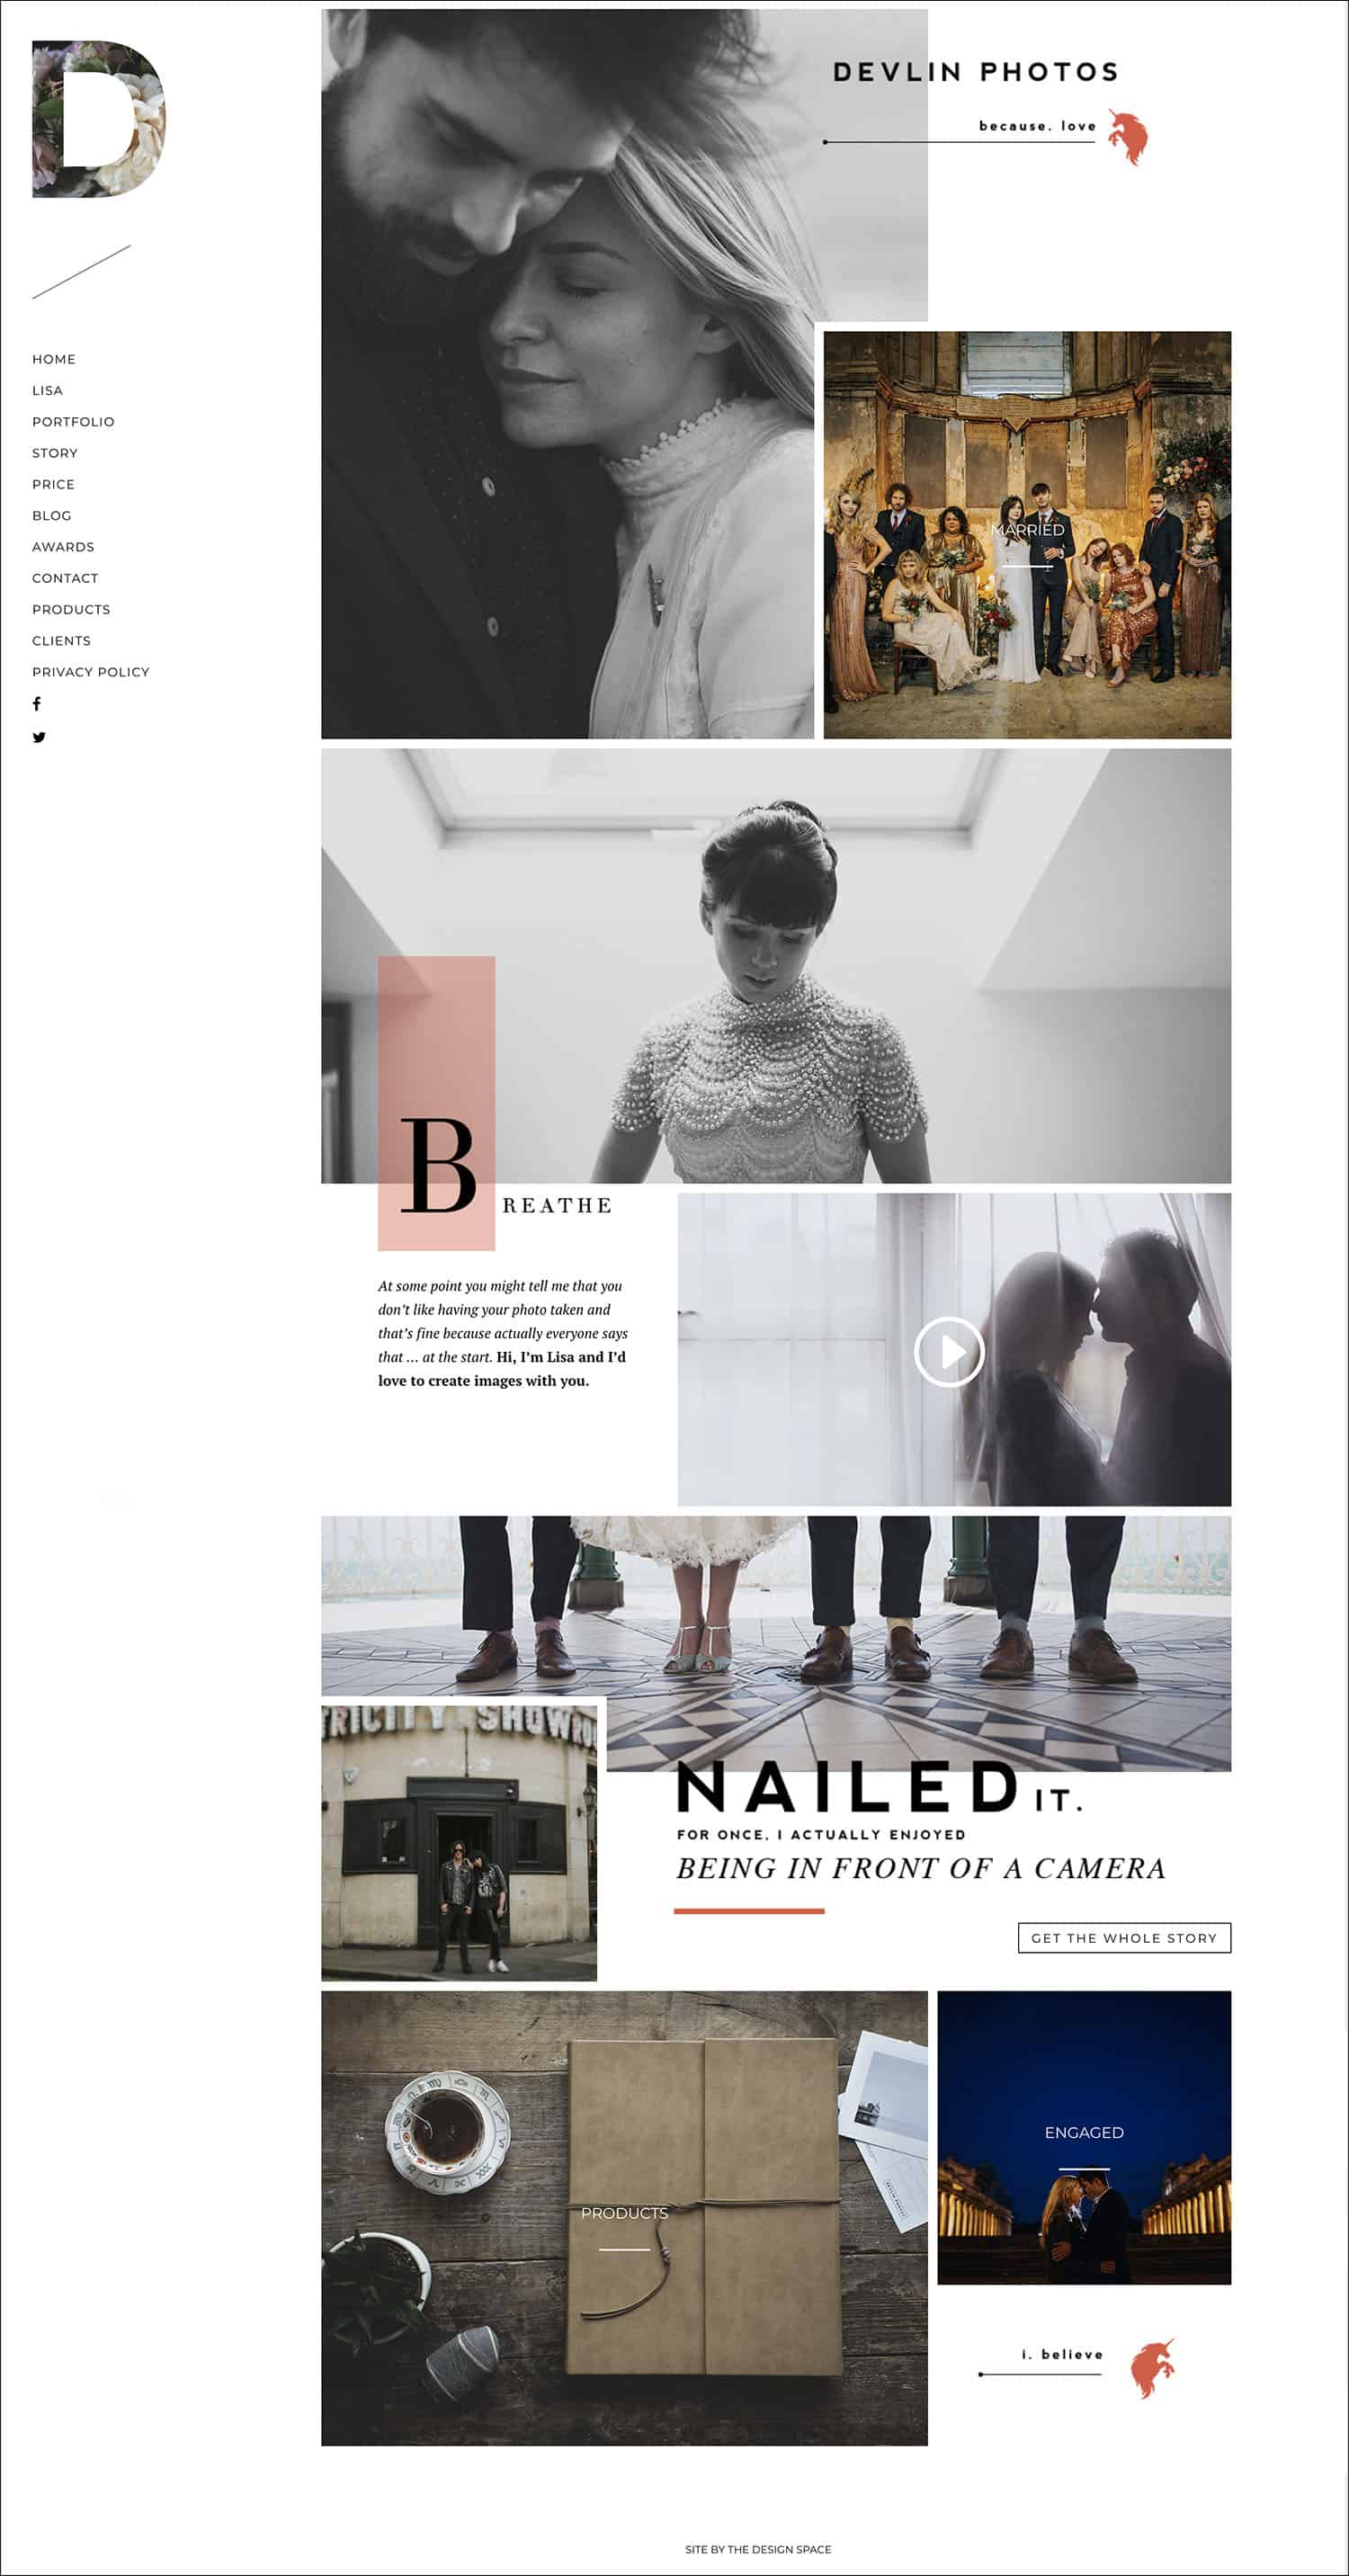 How To Make A Photography Website Your Dream Clients Can't Resist: Lisa Devlin's homepage is playful and fun without being unprofessional or cluttered.